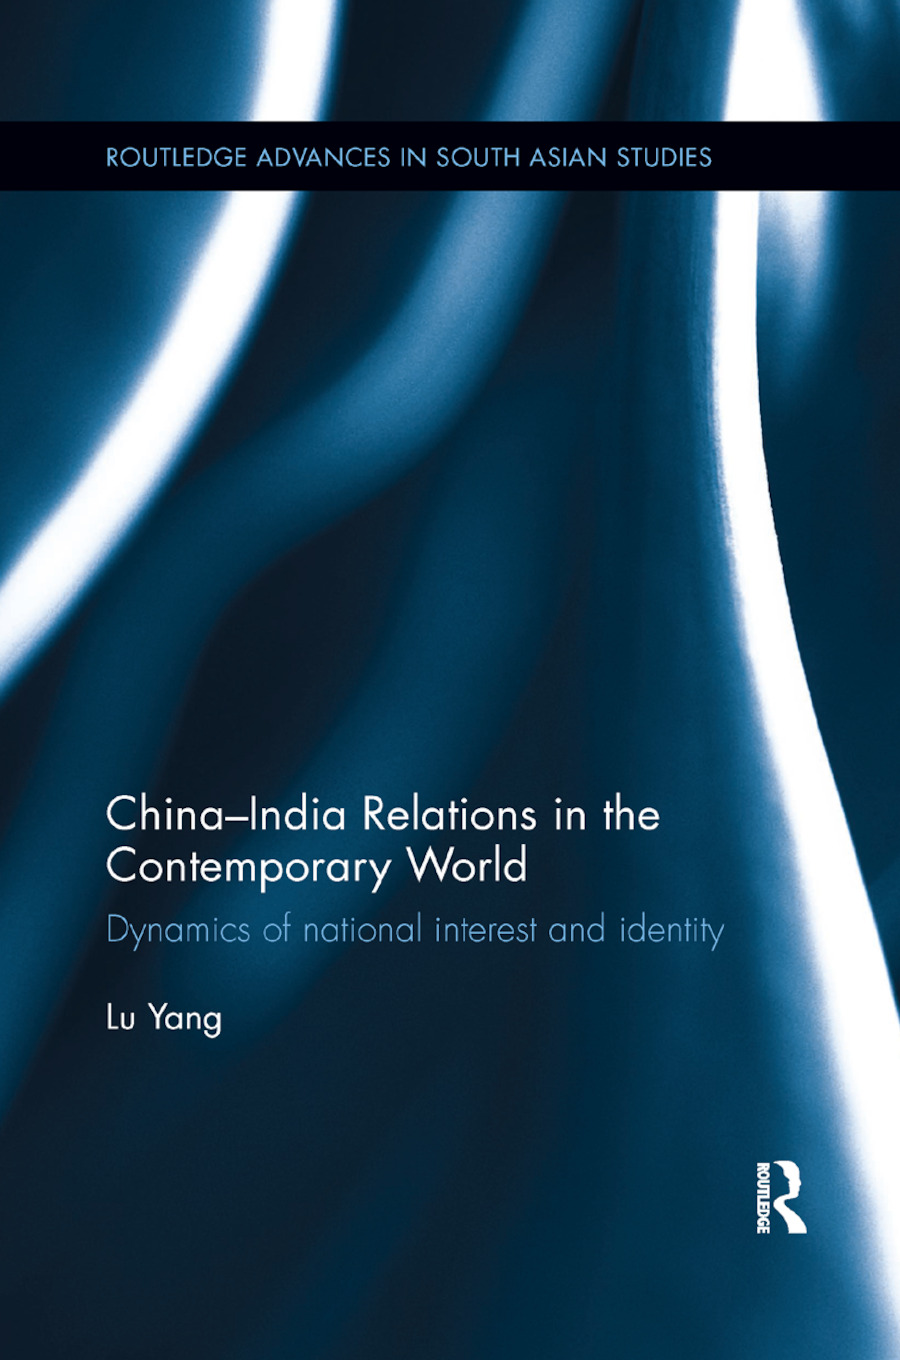 China-India Relations in the Contemporary World: Dynamics of national Identity and Interest book cover